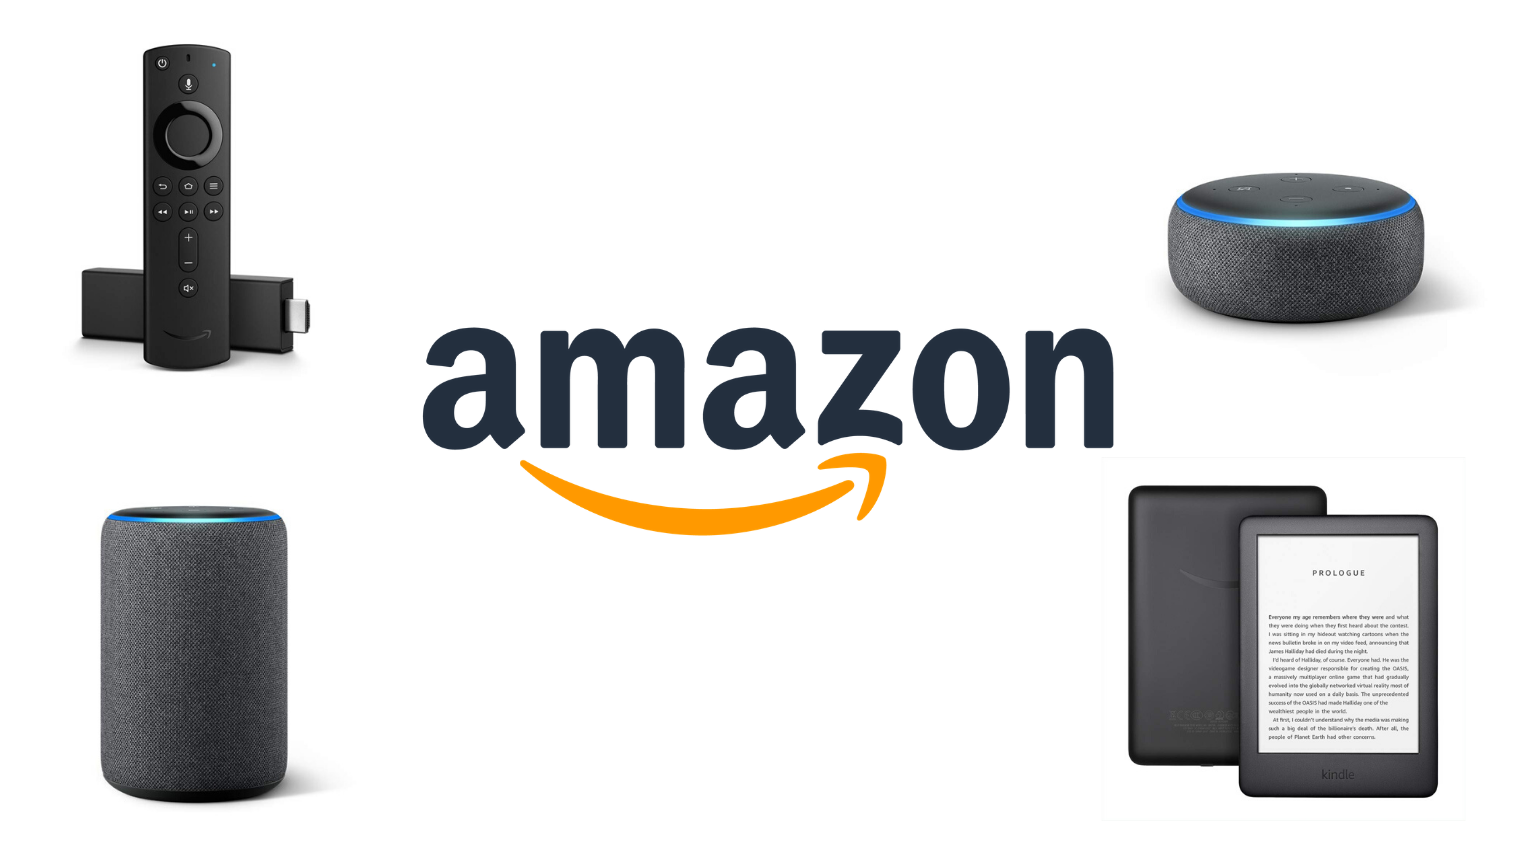 Black Friday 2019 Ad Preview Amazon S Echo Fire Hd Kindle Deals